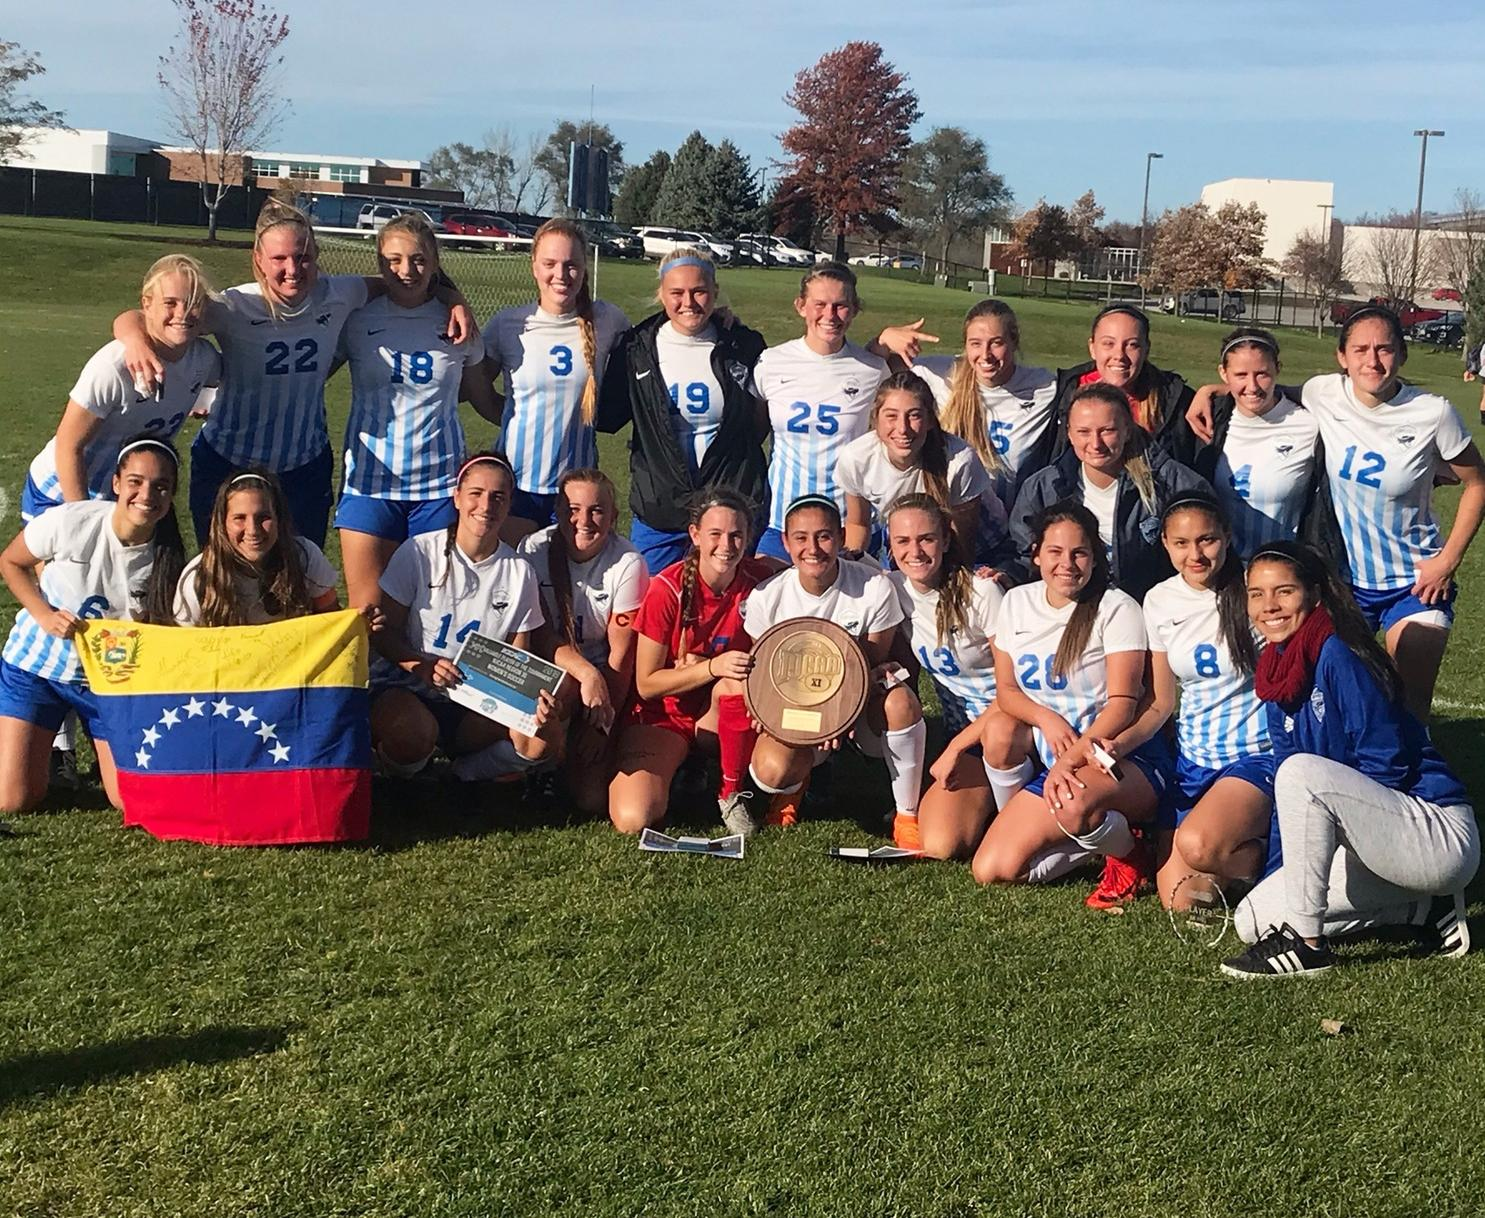 Reivers become Region XI Champions with 4-0 victory over Iowa Central